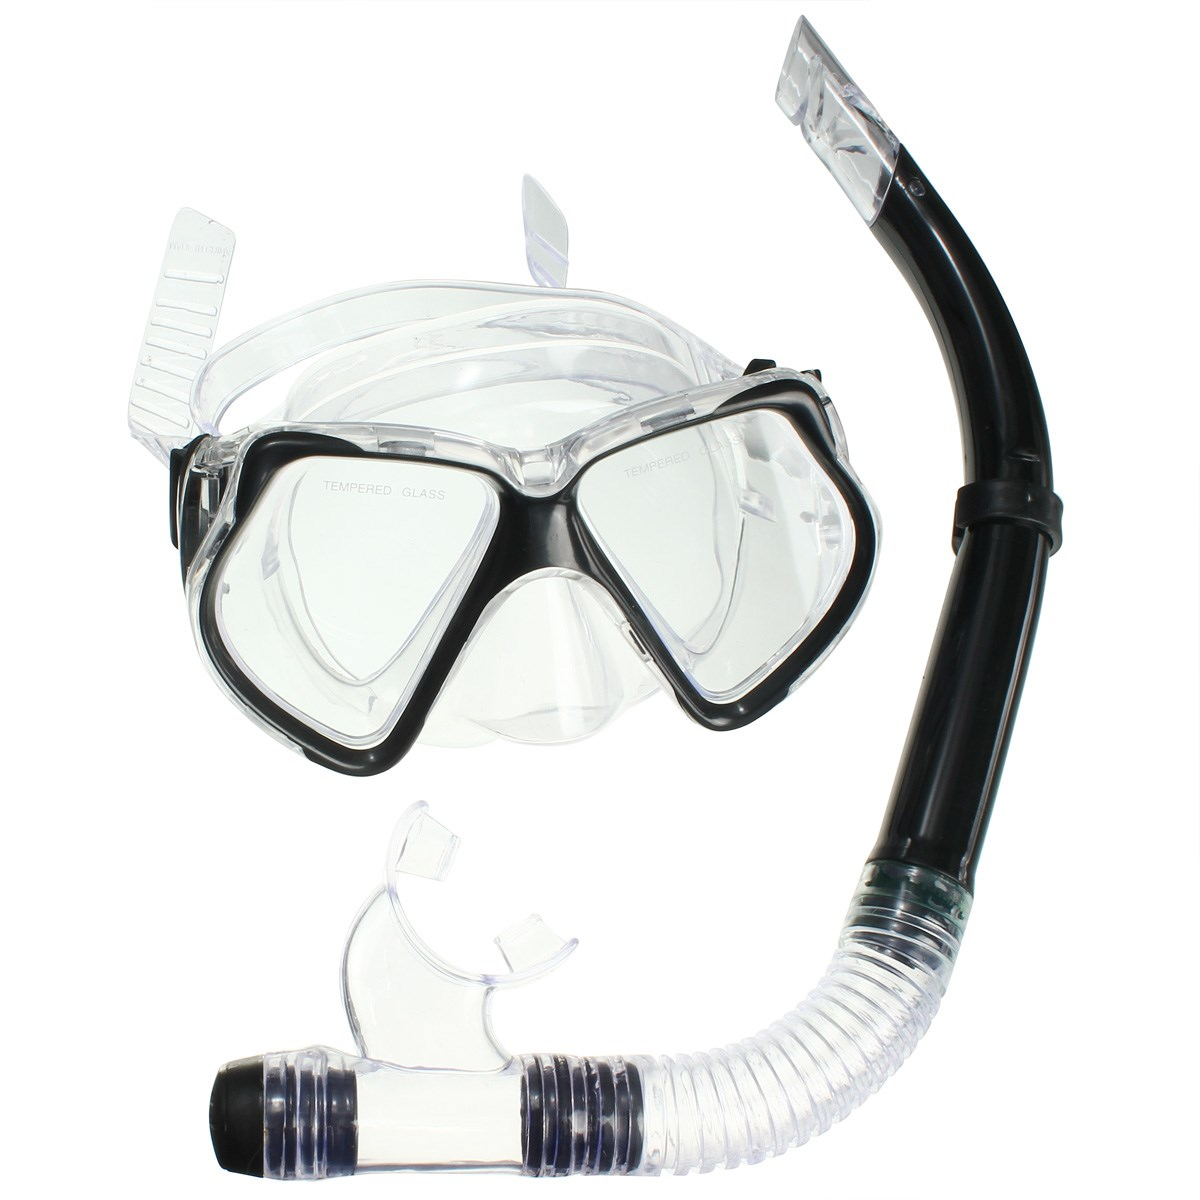 Silicone Tempered Glass Professional Diving Equipment Diving Mask Spearfishing Gear Scuba Diving Equipment Dive Mask+Snorkel